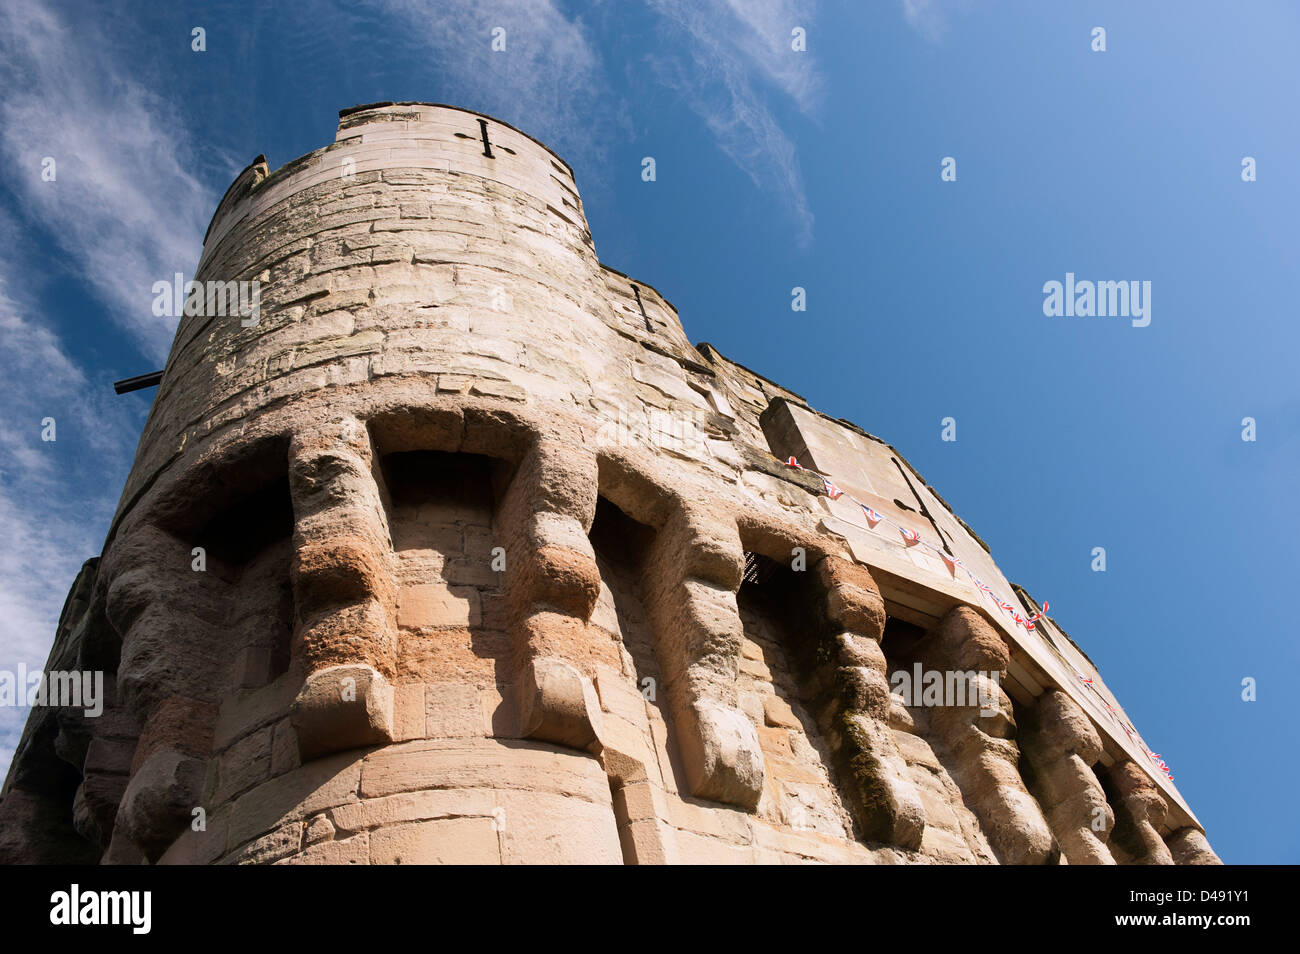 Round stone Tower and Turrets on Warwick Castle, Warwickshire, England - Stock Image